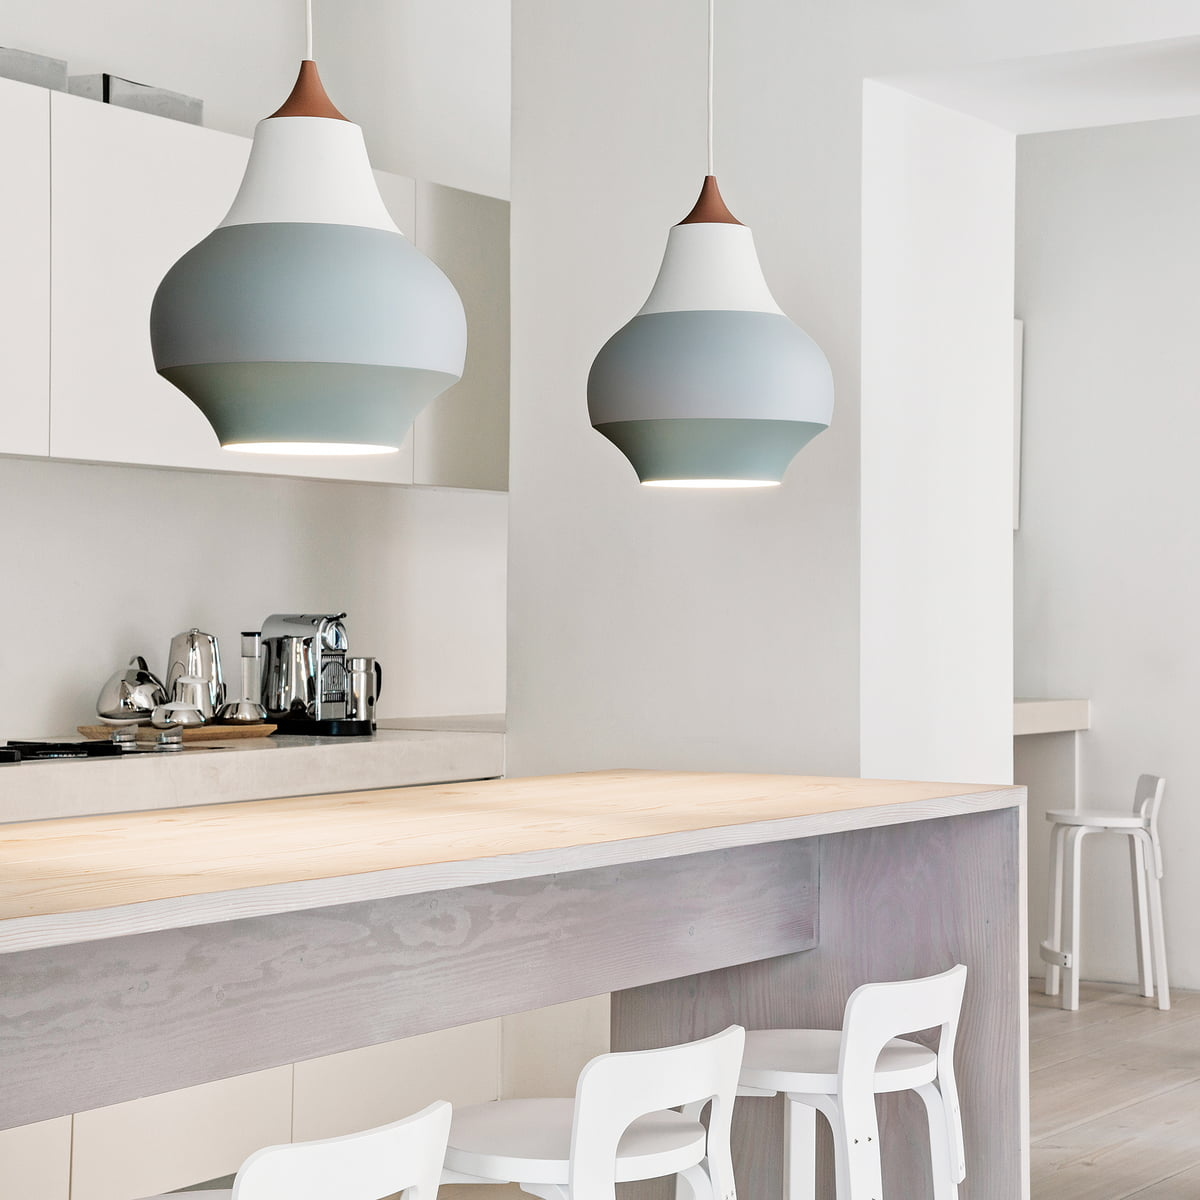 Buy The Cirque Pendant Lamp By Louis Poulsen - Louise Poulsen